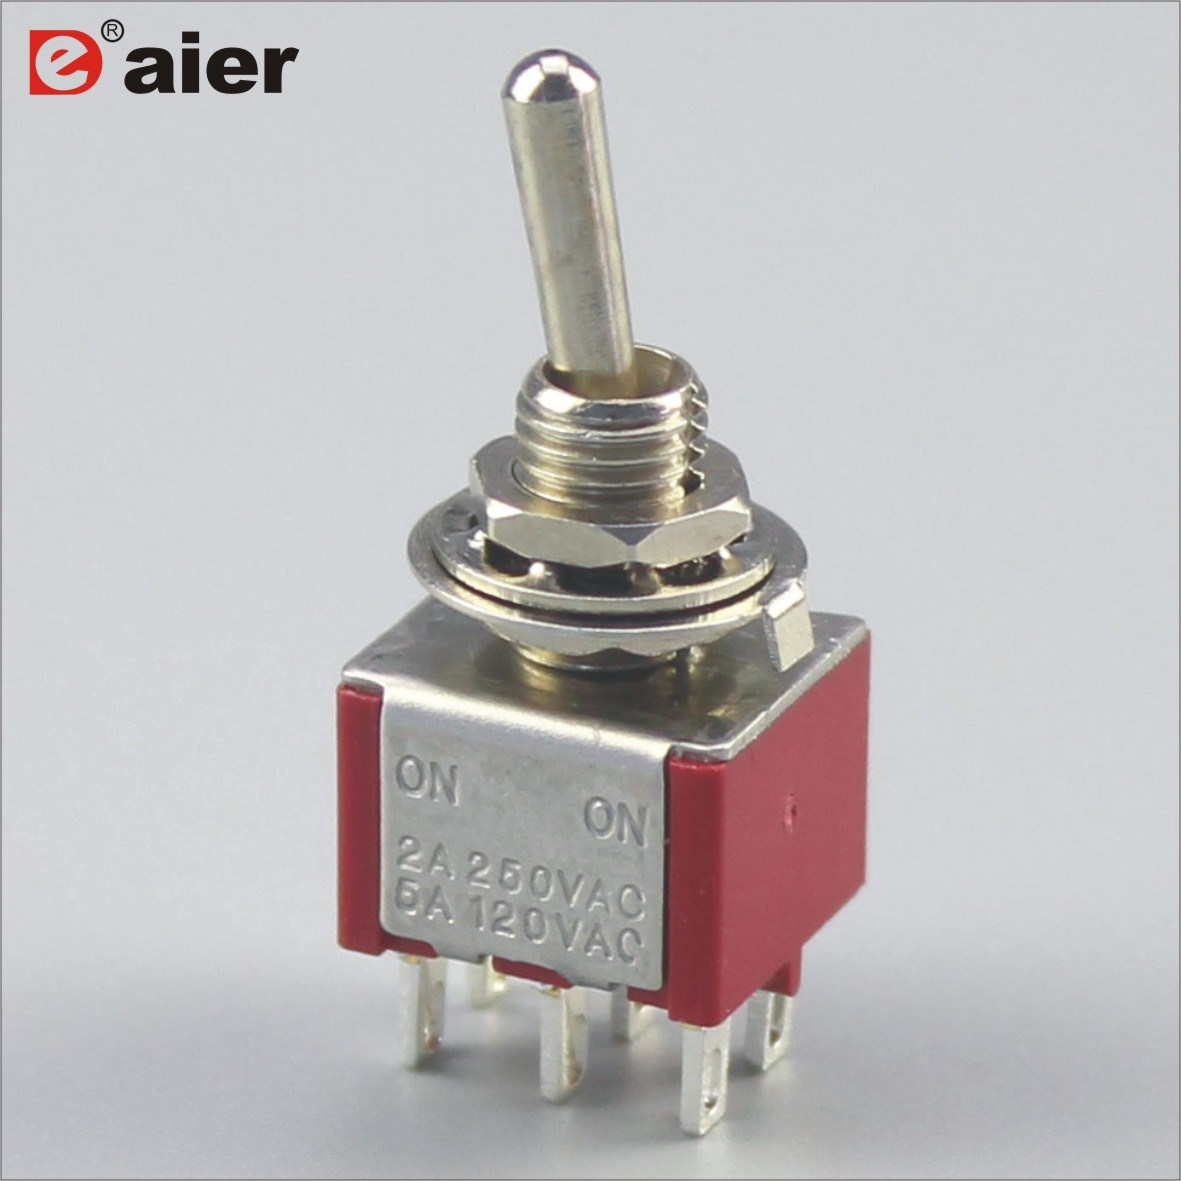 China Mts-202 Mini Double Pole 6 Pin on-on Toggle Switch - China on ...